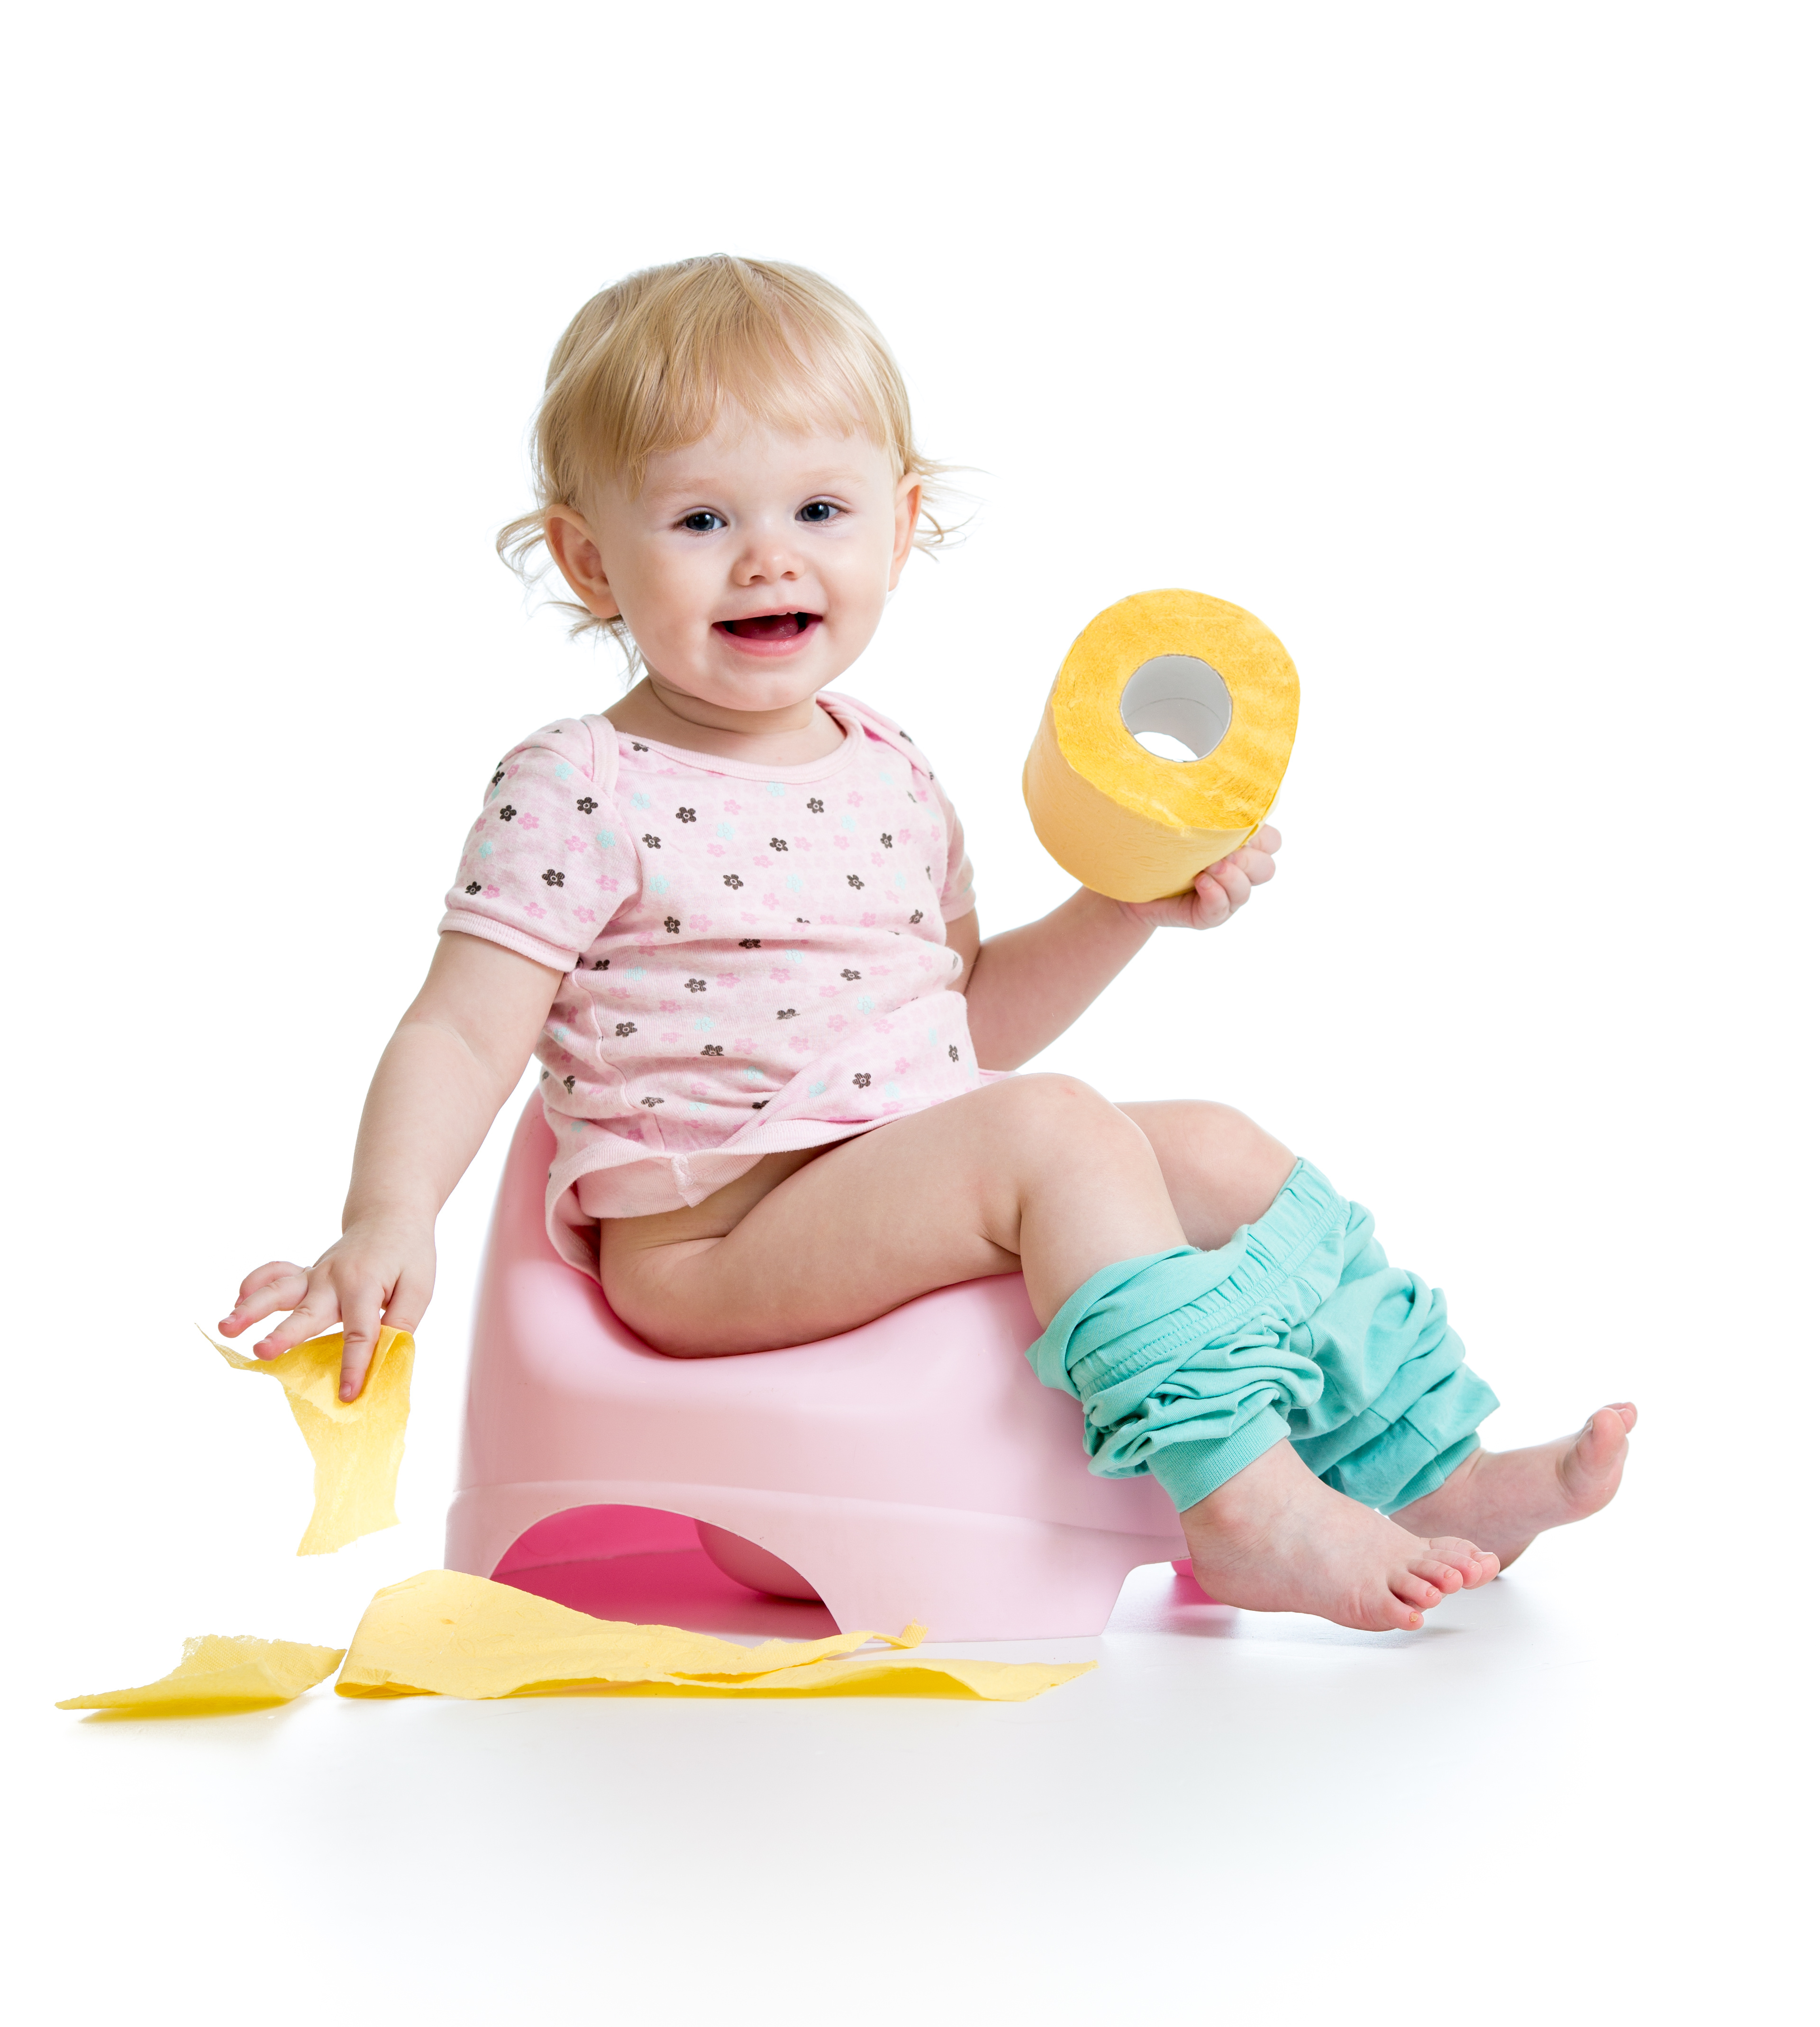 Potty training with baby signs up